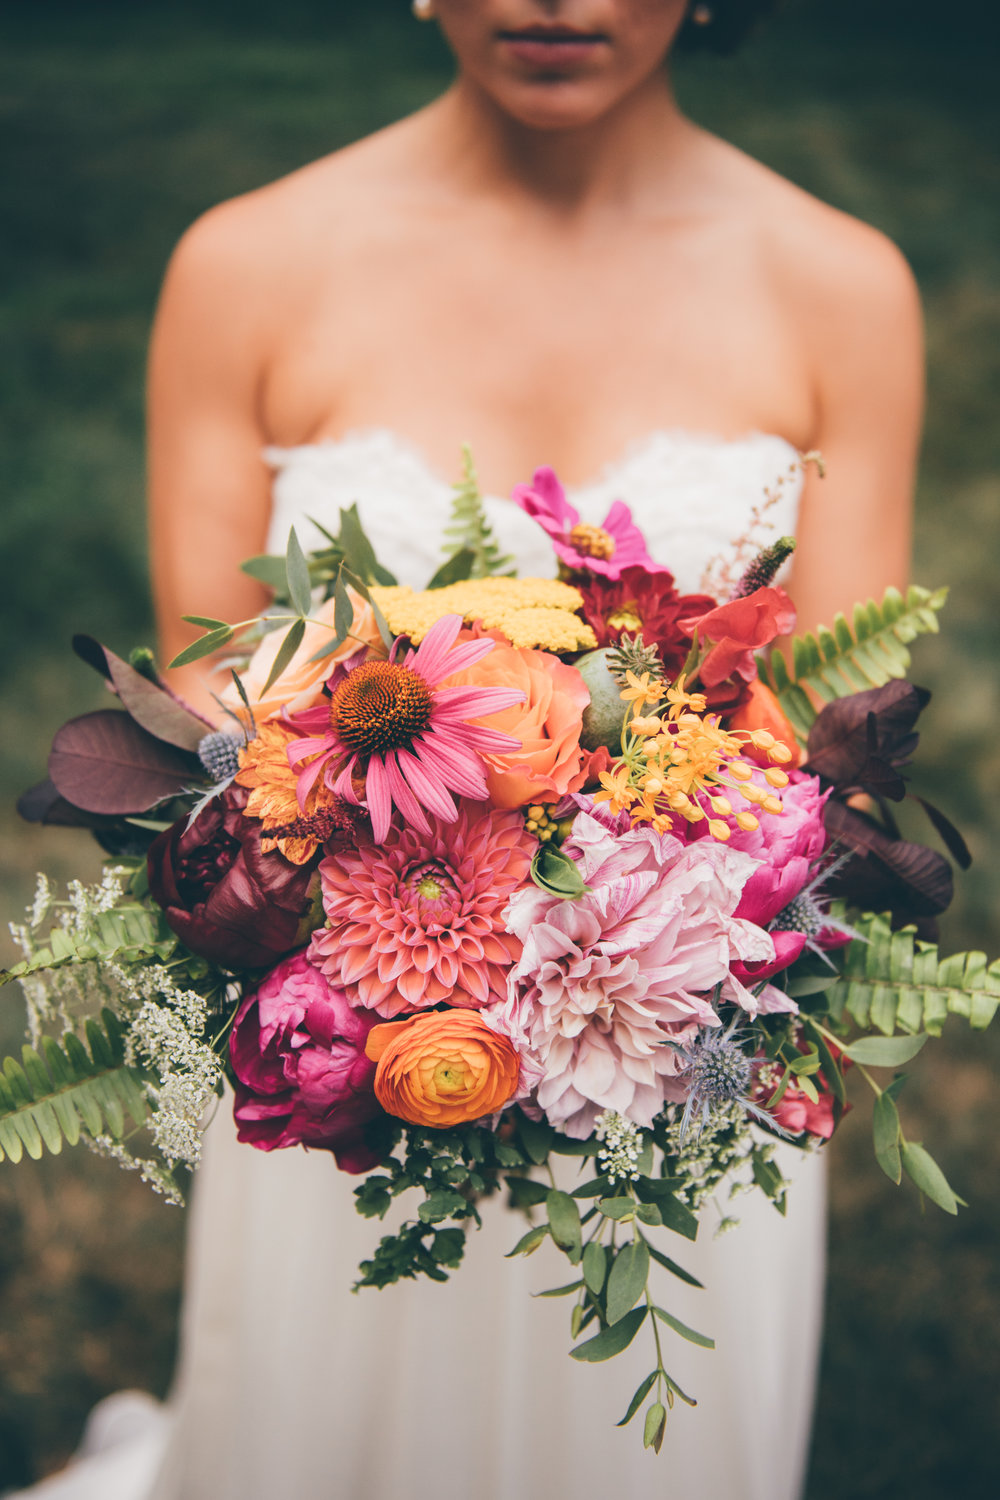 Bride_Bouquet_DSC_6286.jpg